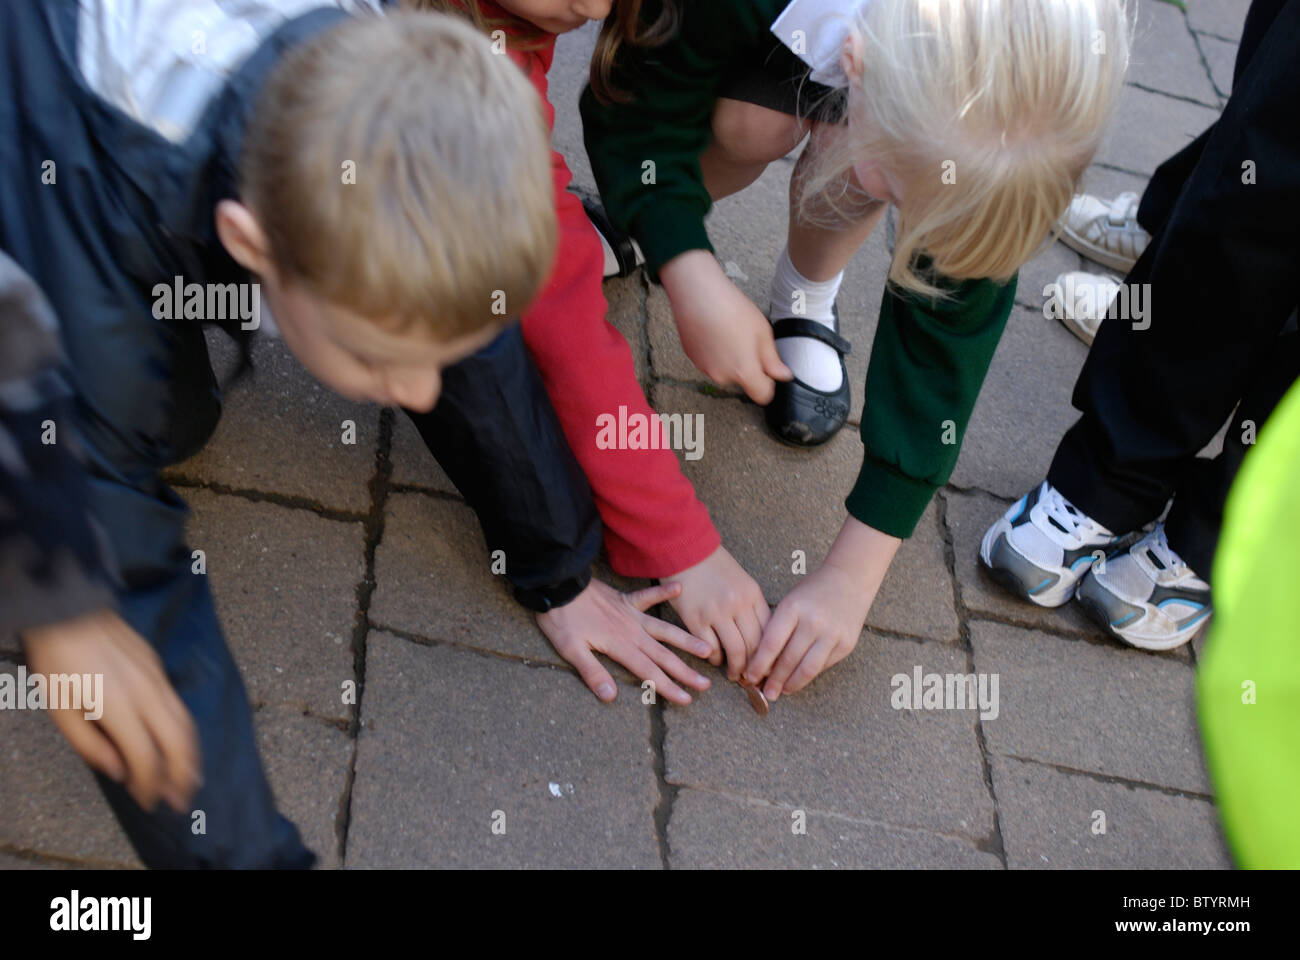 Young primary school children playing outside chasing pennies at the Tiverton Proclamation of the Fair ceremony. - Stock Image